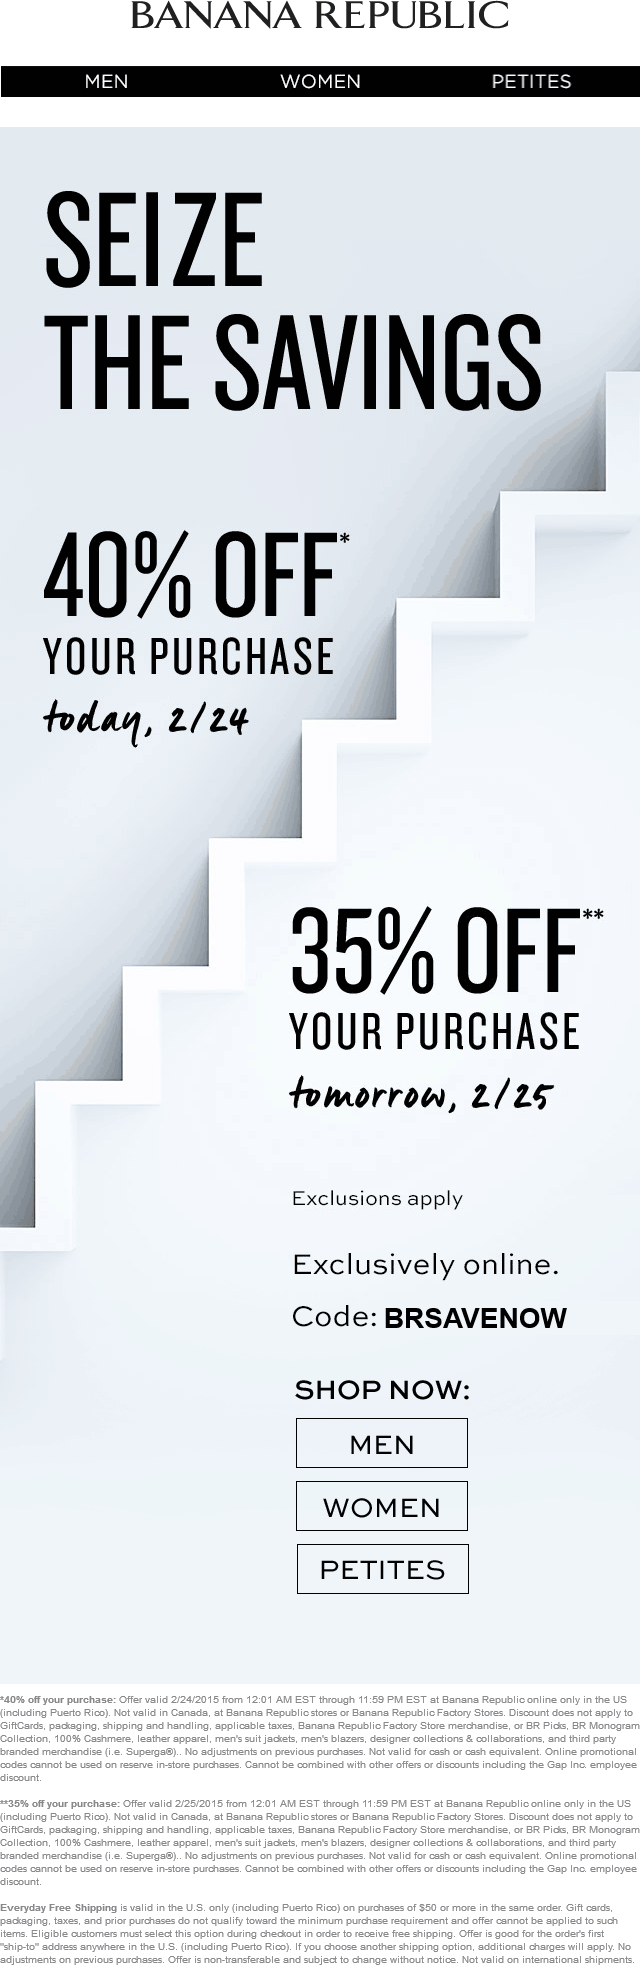 Banana Republic Coupon April 2018 35-40% off at Banana Republic, or online via promo code BRSAVENOW